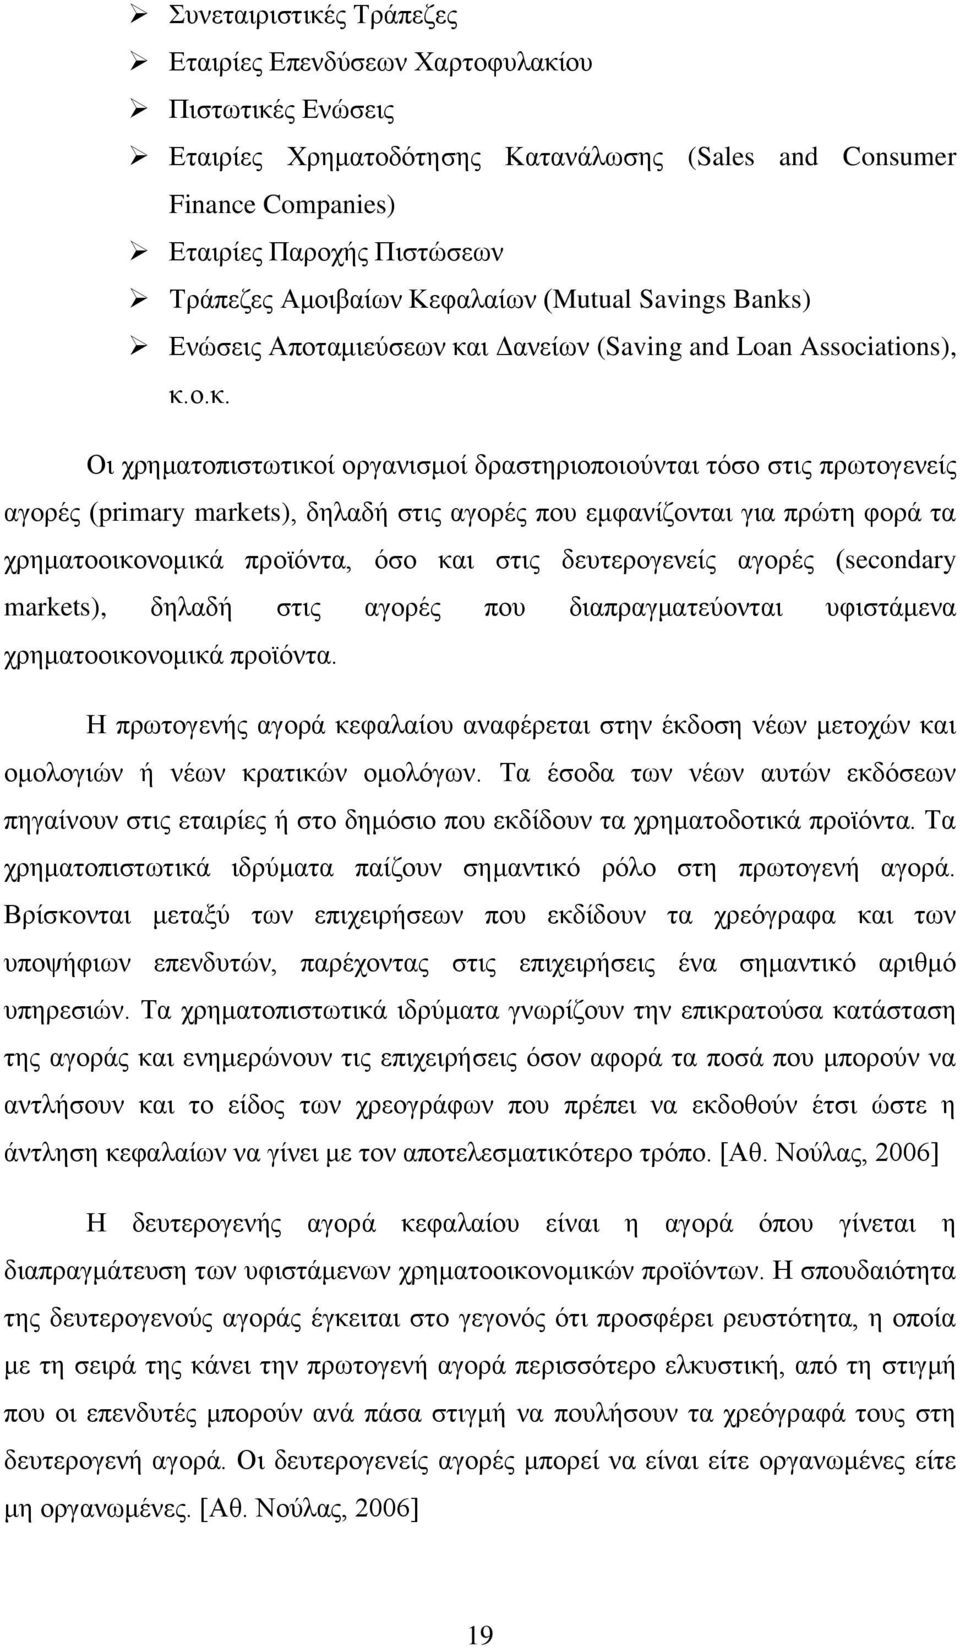 ι Δανείων (Saving and Loan Associations), κ.